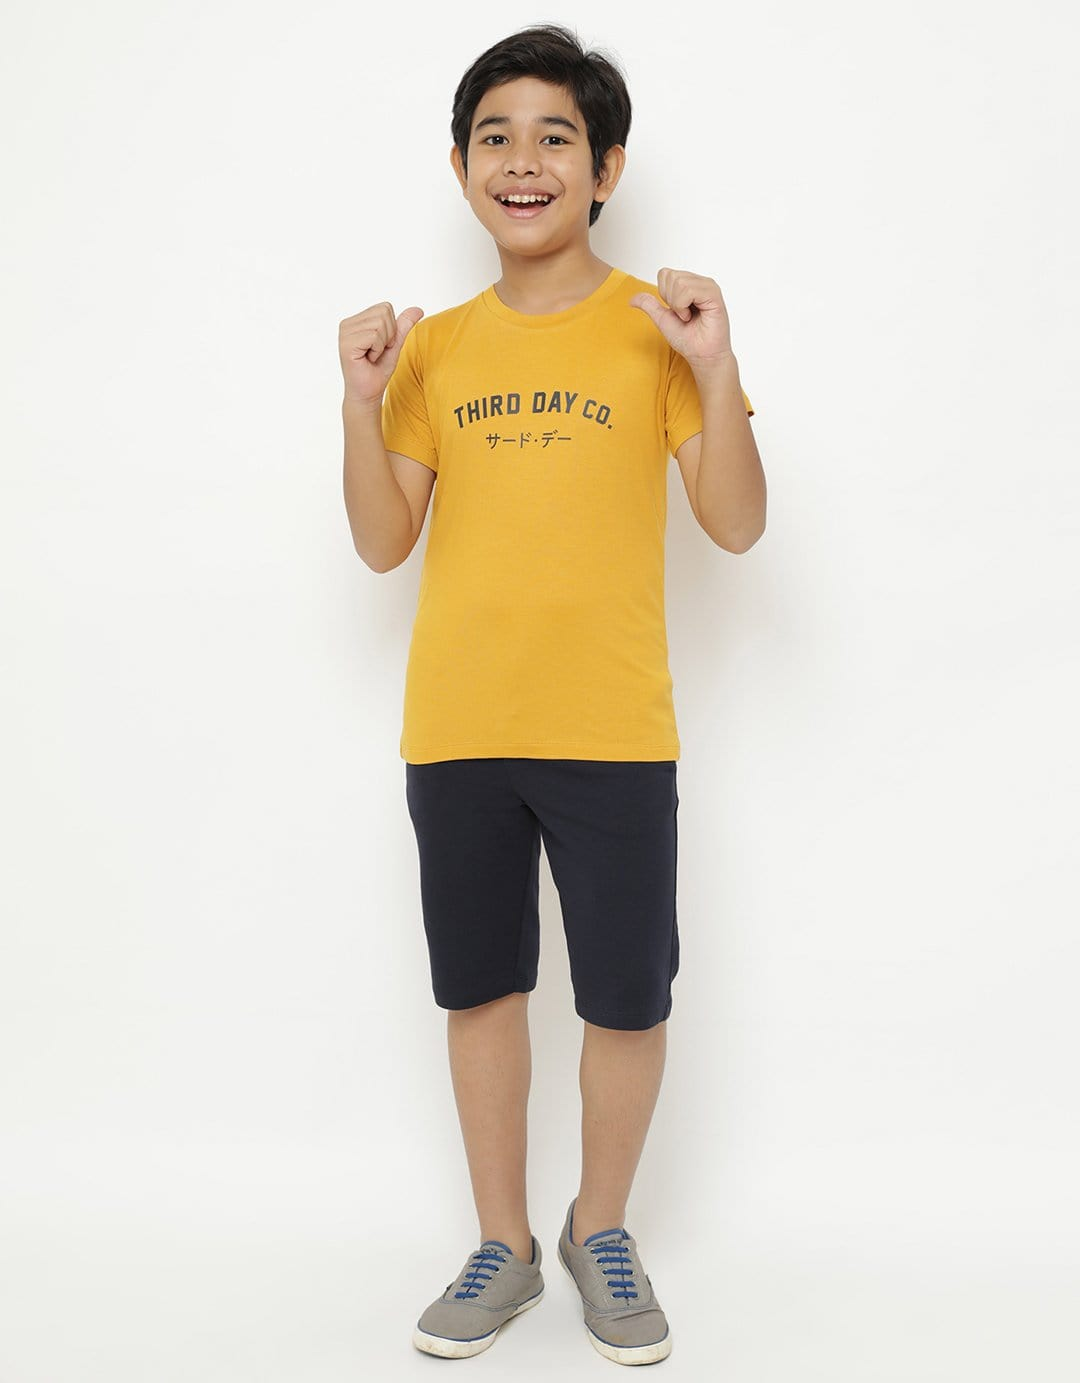 BT186 thirdday kaos anak tdco mustard